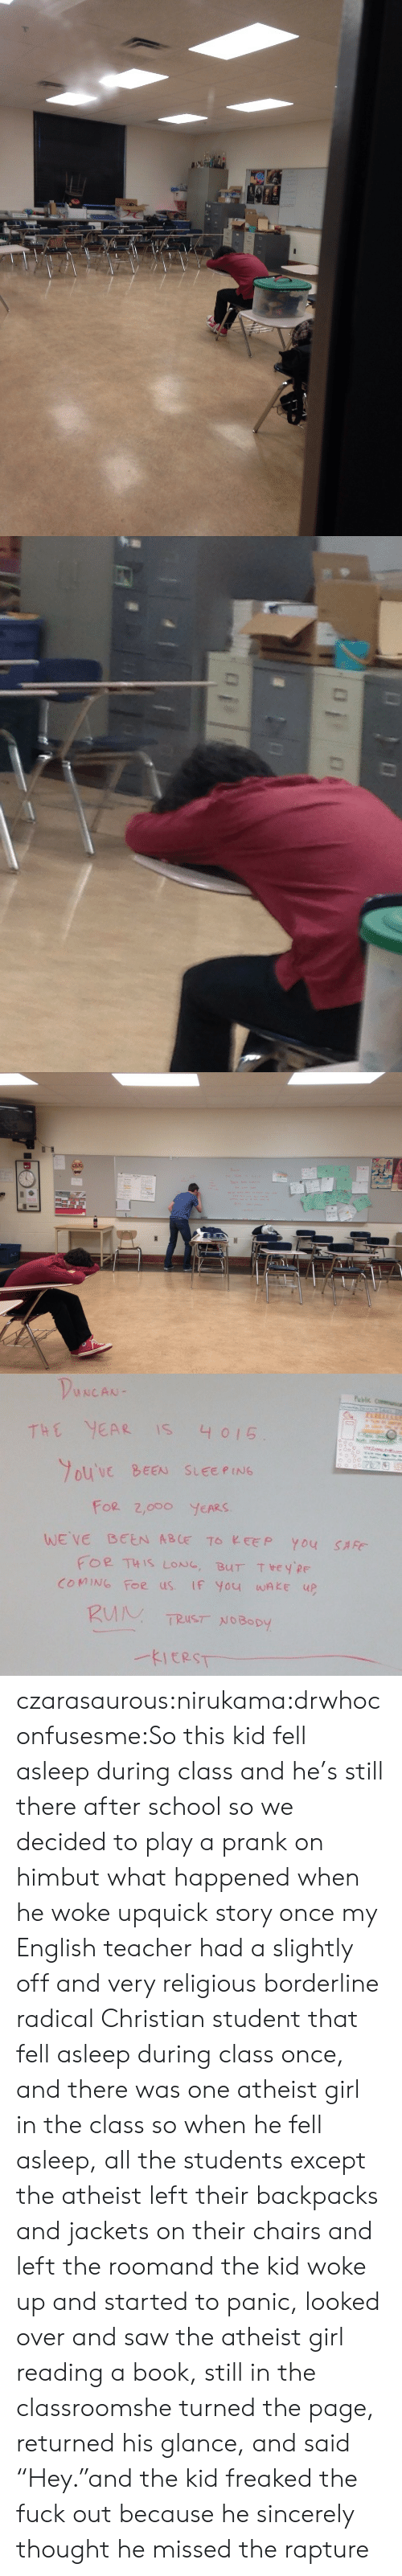 """foe: THE YEA IS 4 015  ouVe BEEN SLEEPING  For 2,ooO YEARS  FOR THIS LoNG, BUT Tey  COMING Foe us IF You wAke up  HEY PE  TRUST NoBopy czarasaurous:nirukama:drwhoconfusesme:So this kid fell asleep during class and he's still there after school so we decided to play a prank on himbut what happened when he woke upquick story once my English teacher had a slightly off and very religious borderline radical Christian student that fell asleep during class once, and there was one atheist girl in the class so when he fell asleep, all the students except the atheist left their backpacks and jackets on their chairs and left the roomand the kid woke up and started to panic, looked over and saw the atheist girl reading a book, still in the classroomshe turned the page, returned his glance, and said """"Hey.""""and the kid freaked the fuck out because he sincerely thought he missed the rapture"""